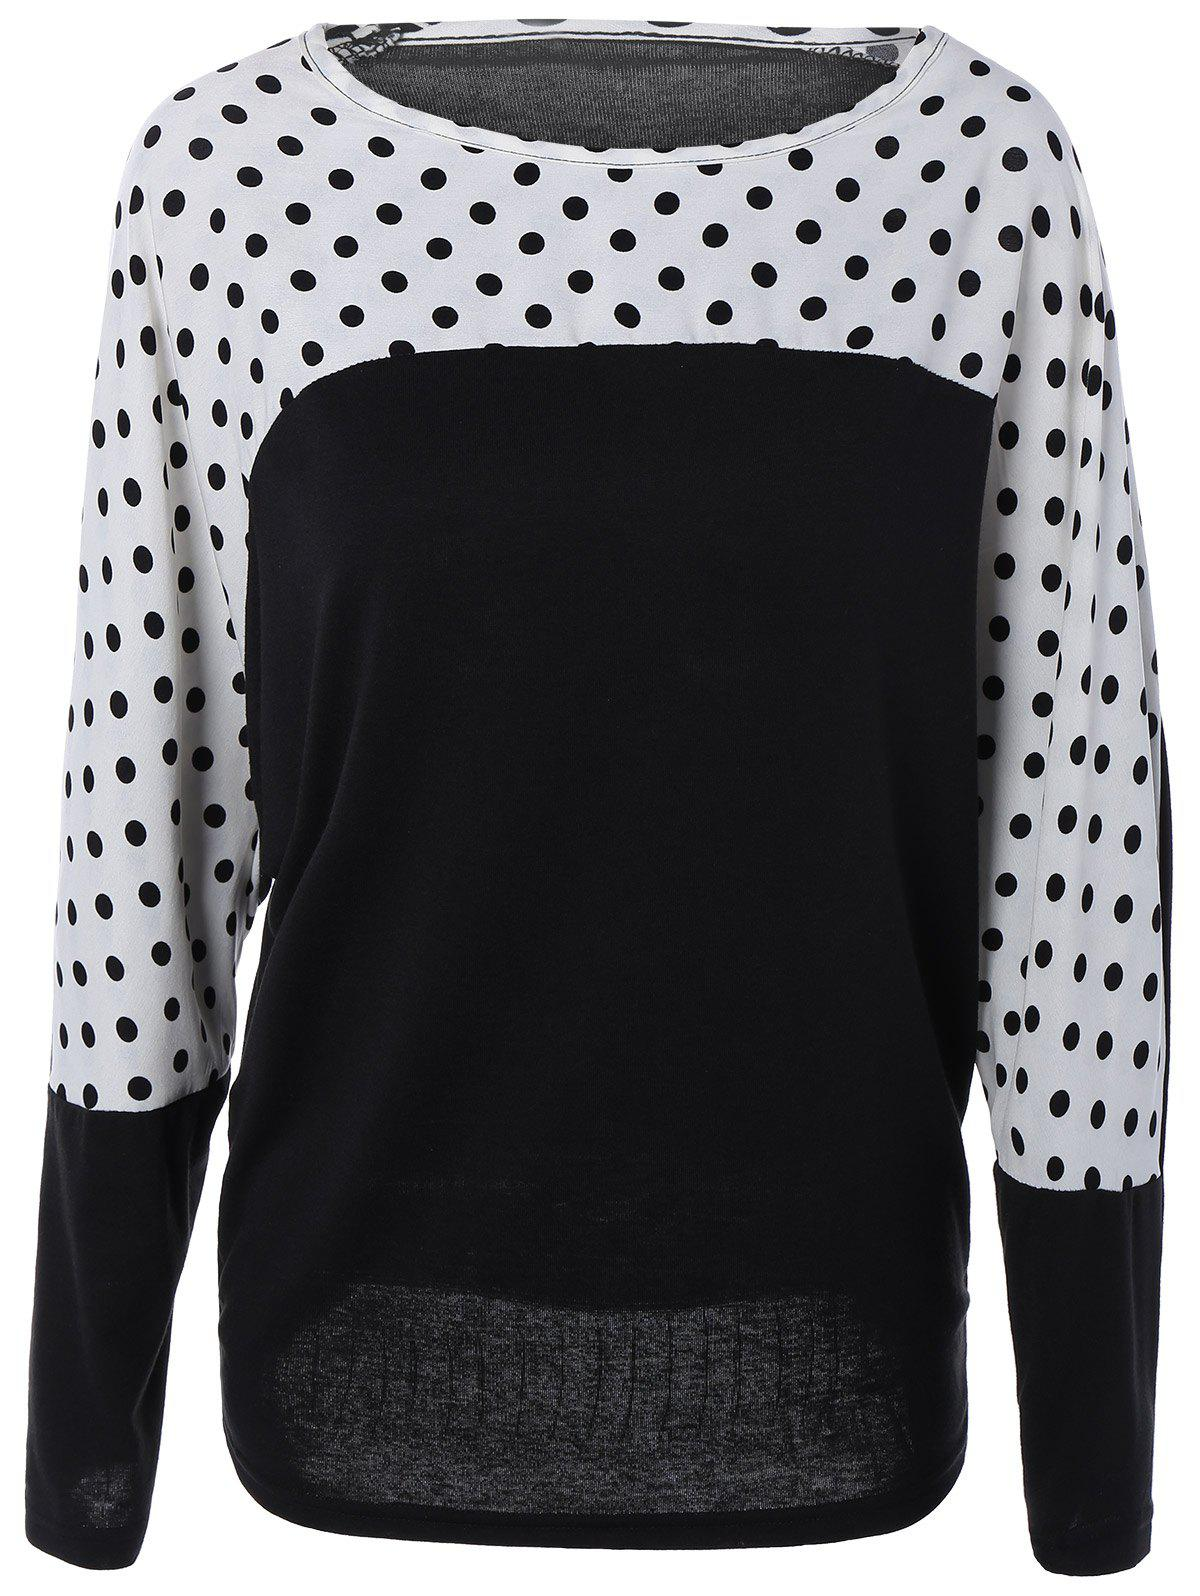 Long Dolman Sleeve Polka Dot Color Block Blouse - WHITE/BLACK XL